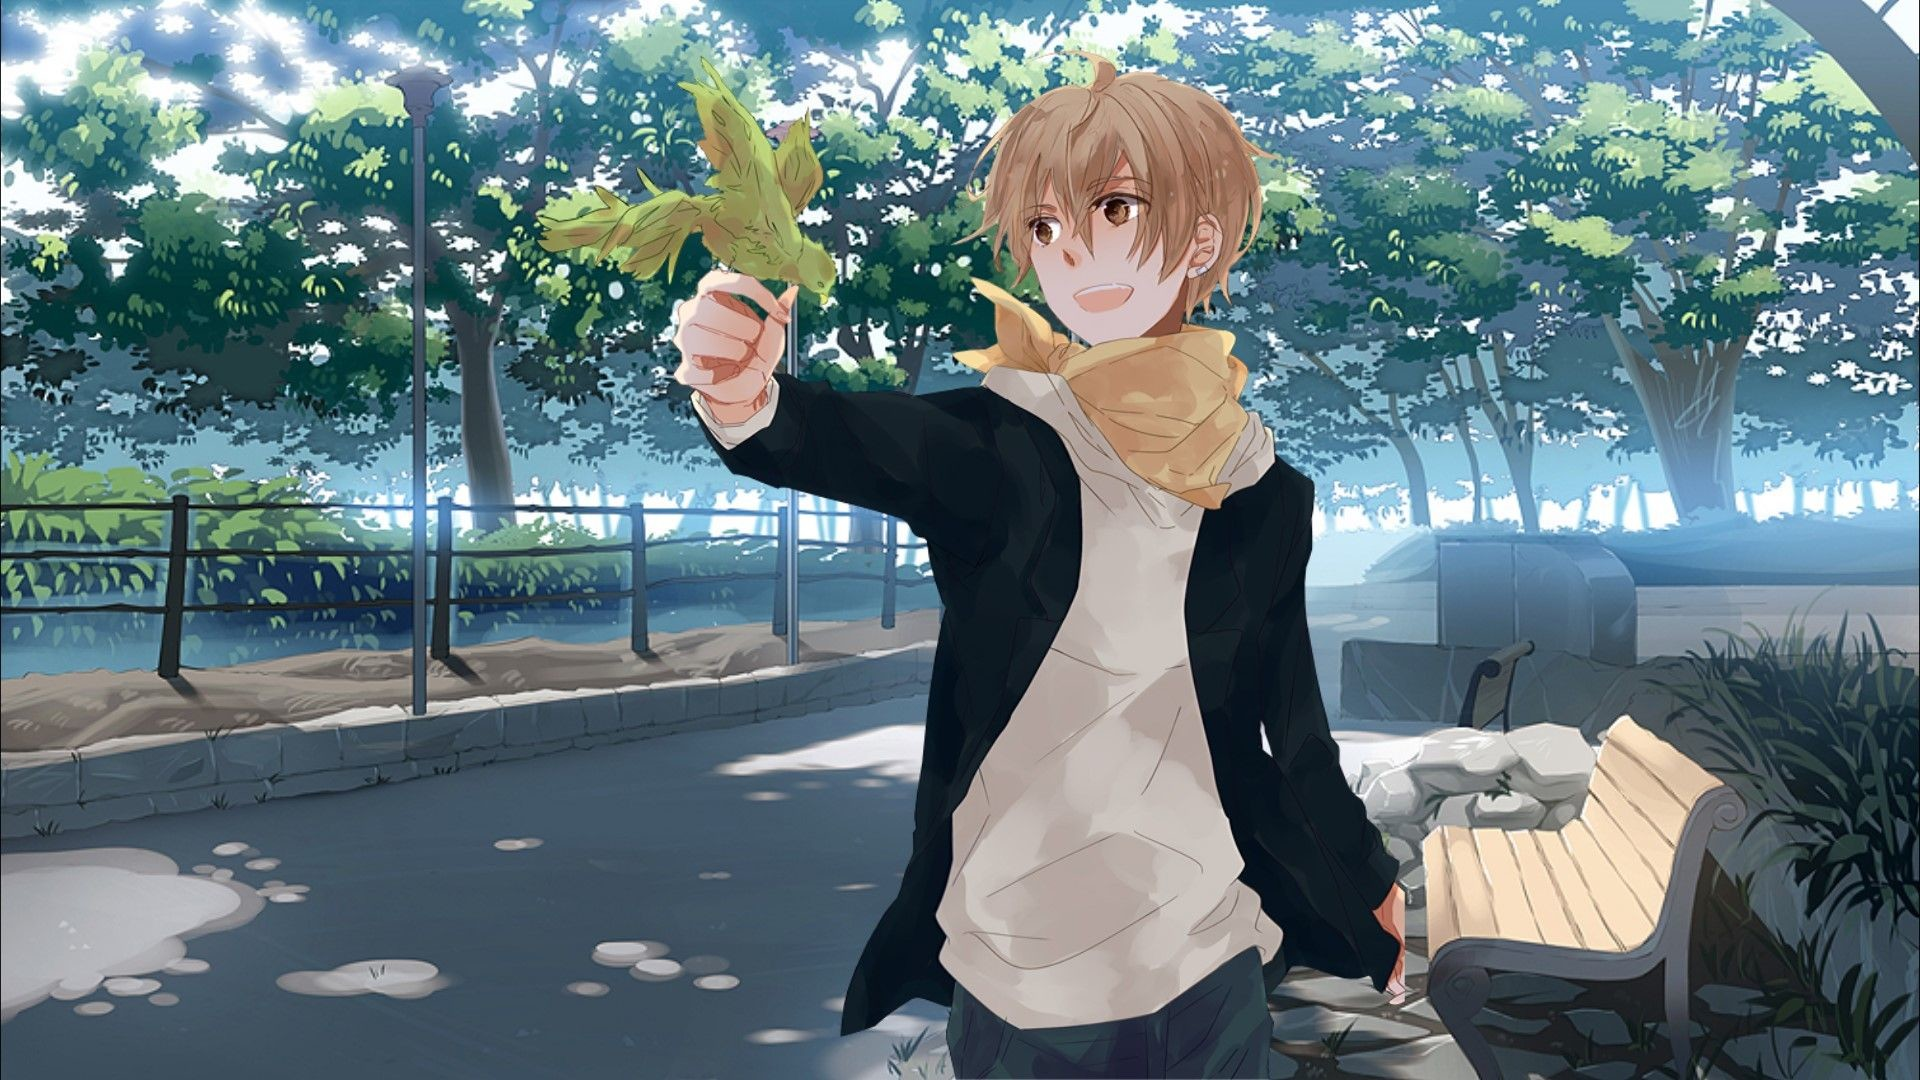 Boy Anime Wallpapers 56 Pictures